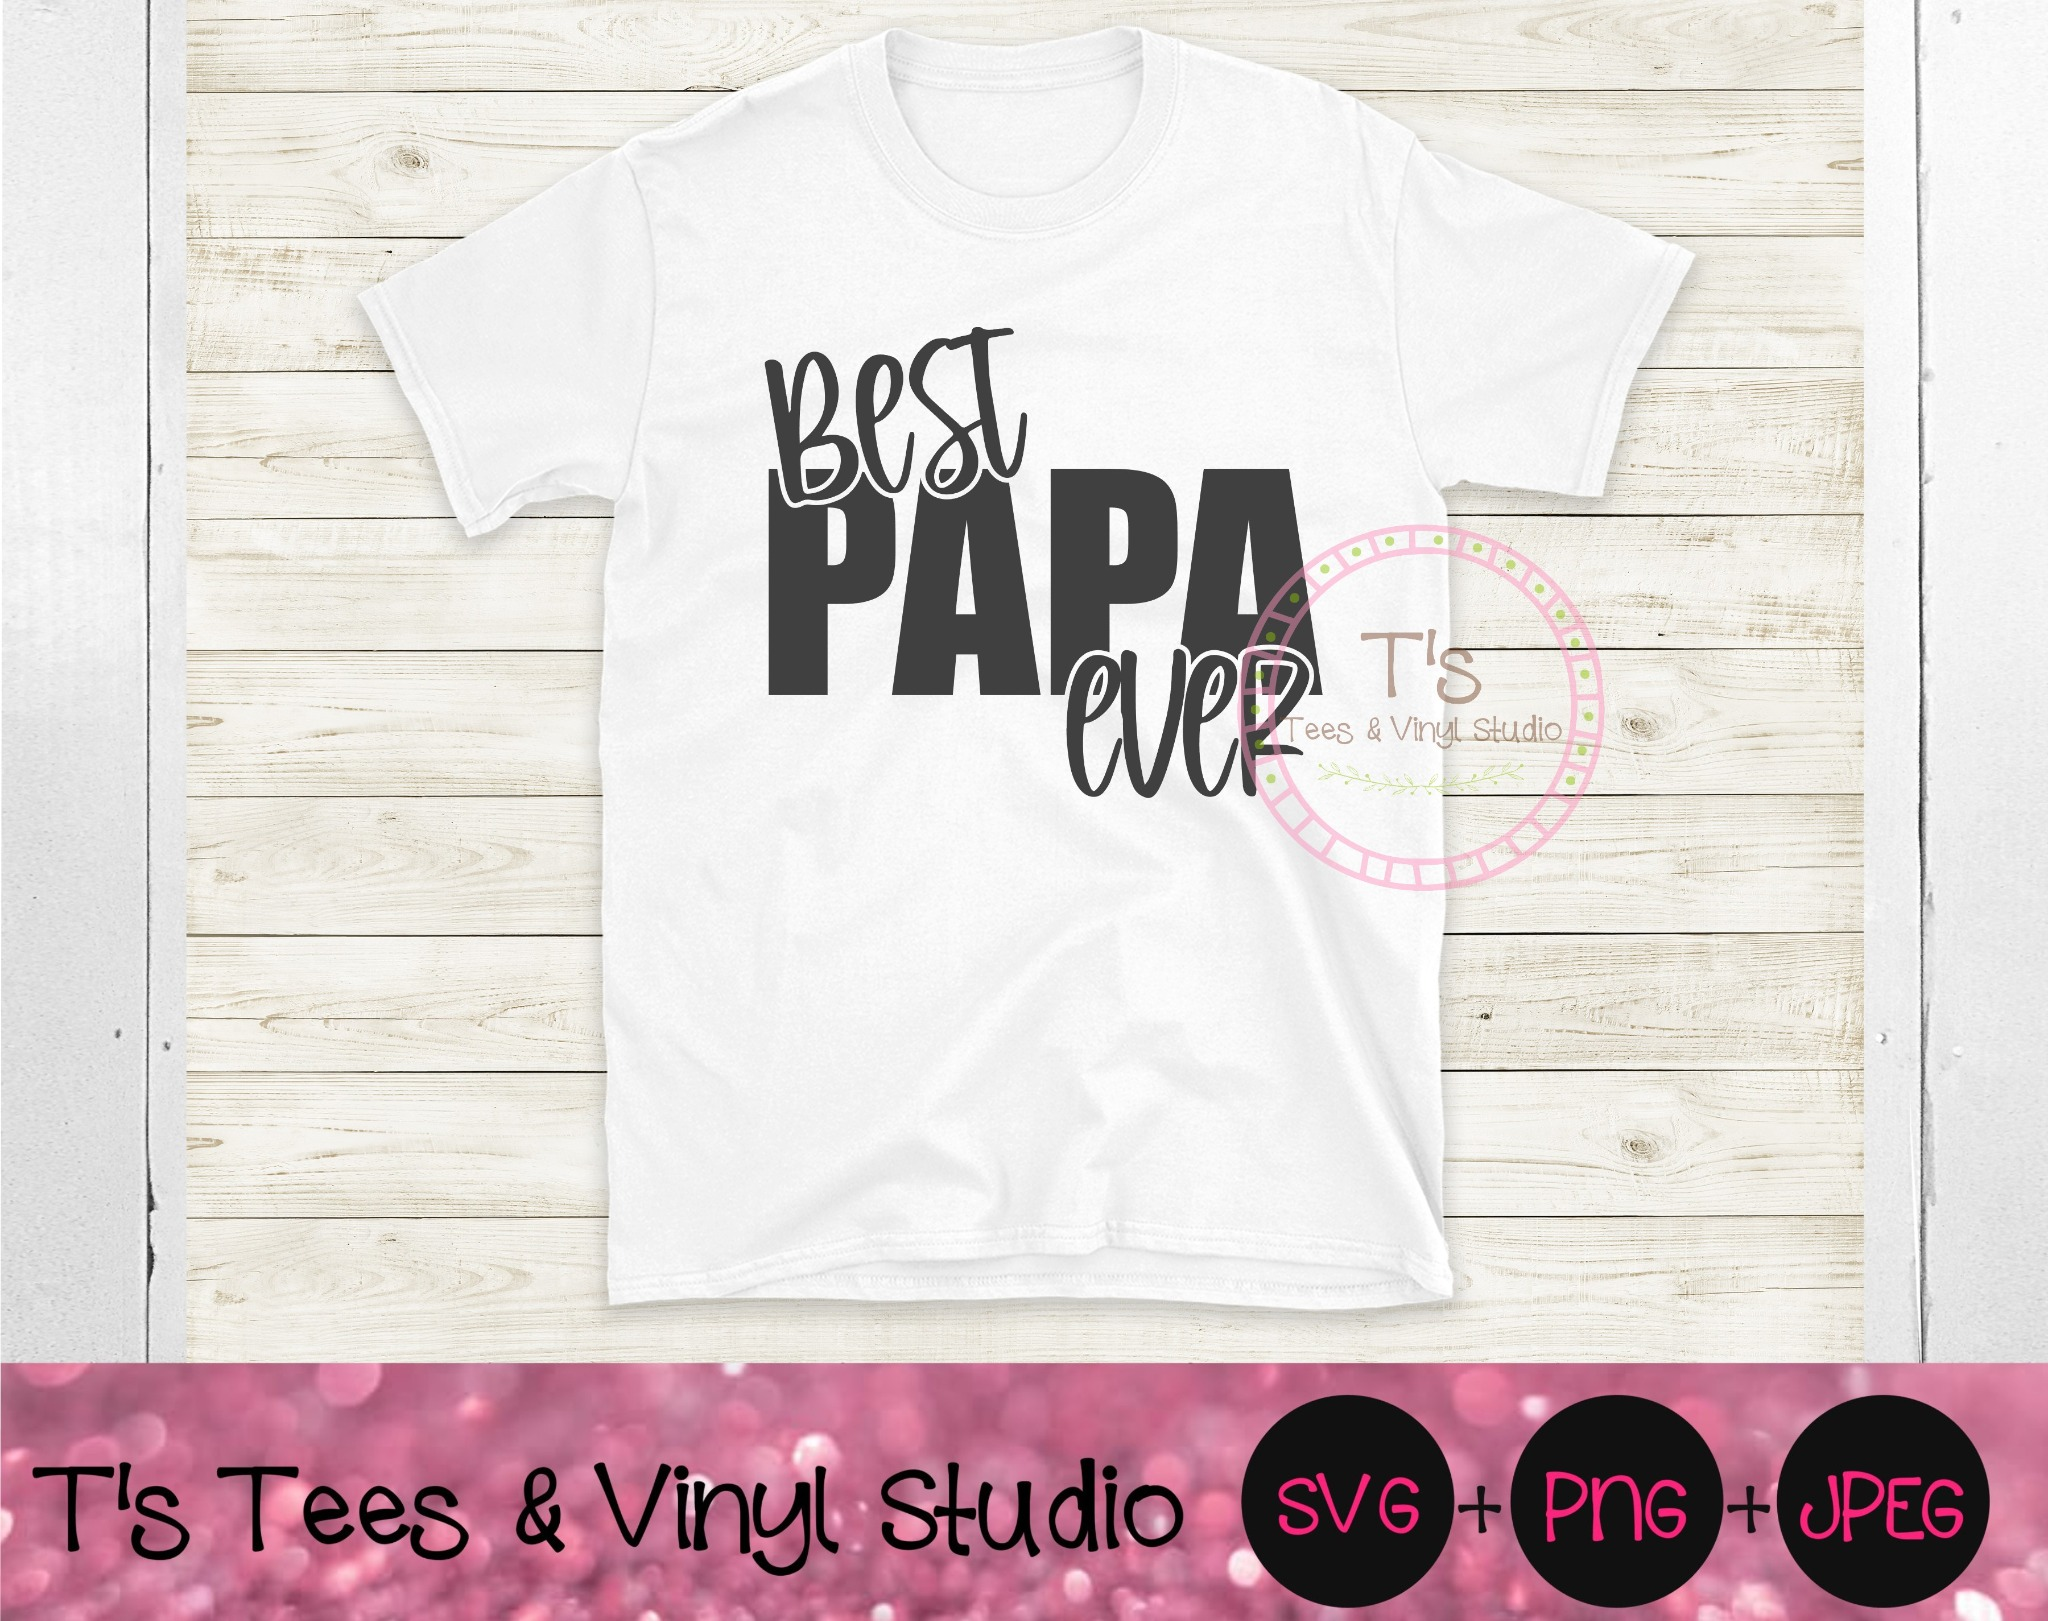 Best Papa Ever Svg, Father's Day, Grandpa, Dad Png, Daddy, Happy Father's Day, Best Ever, Cut File,